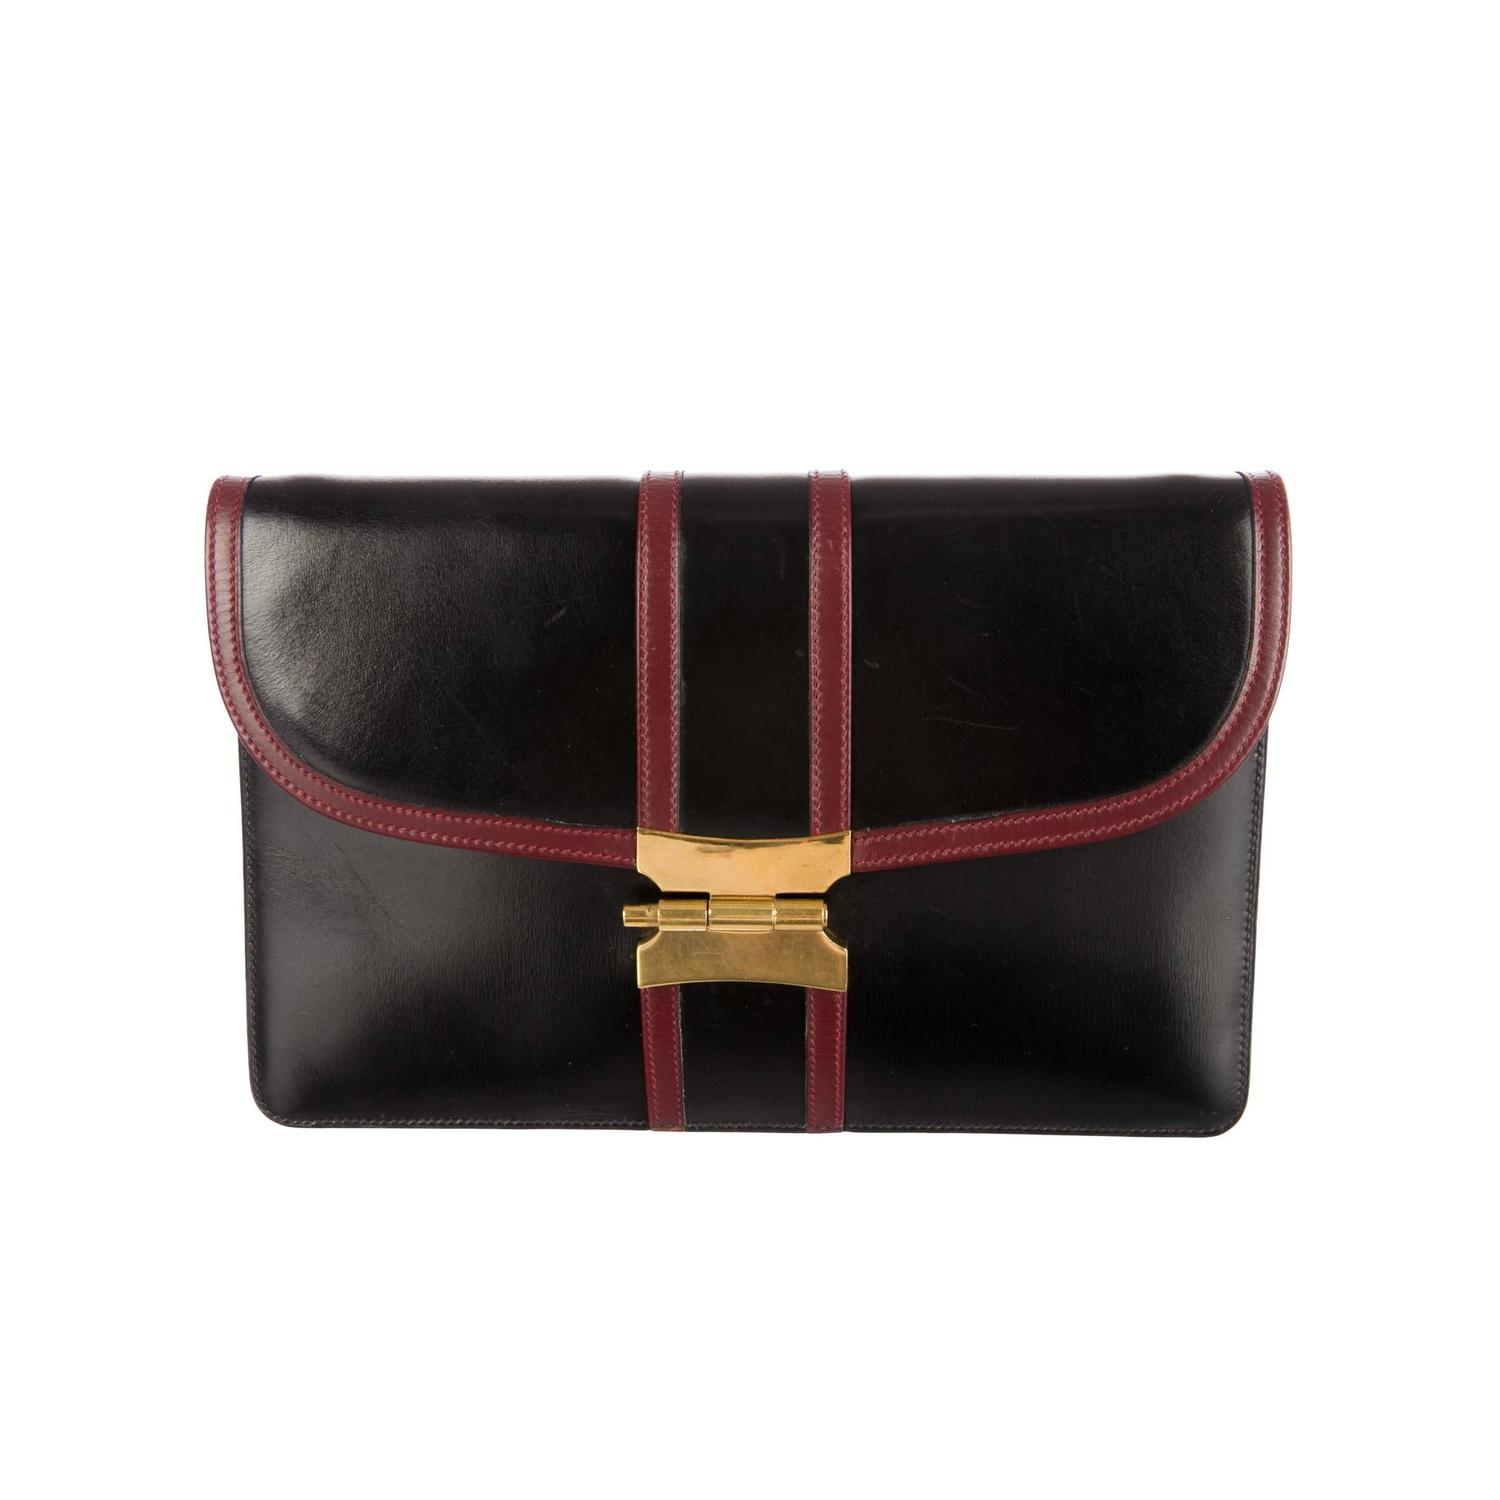 small brown handbag - hermes black and red box leather rouge h flap envelope clutch bag ...